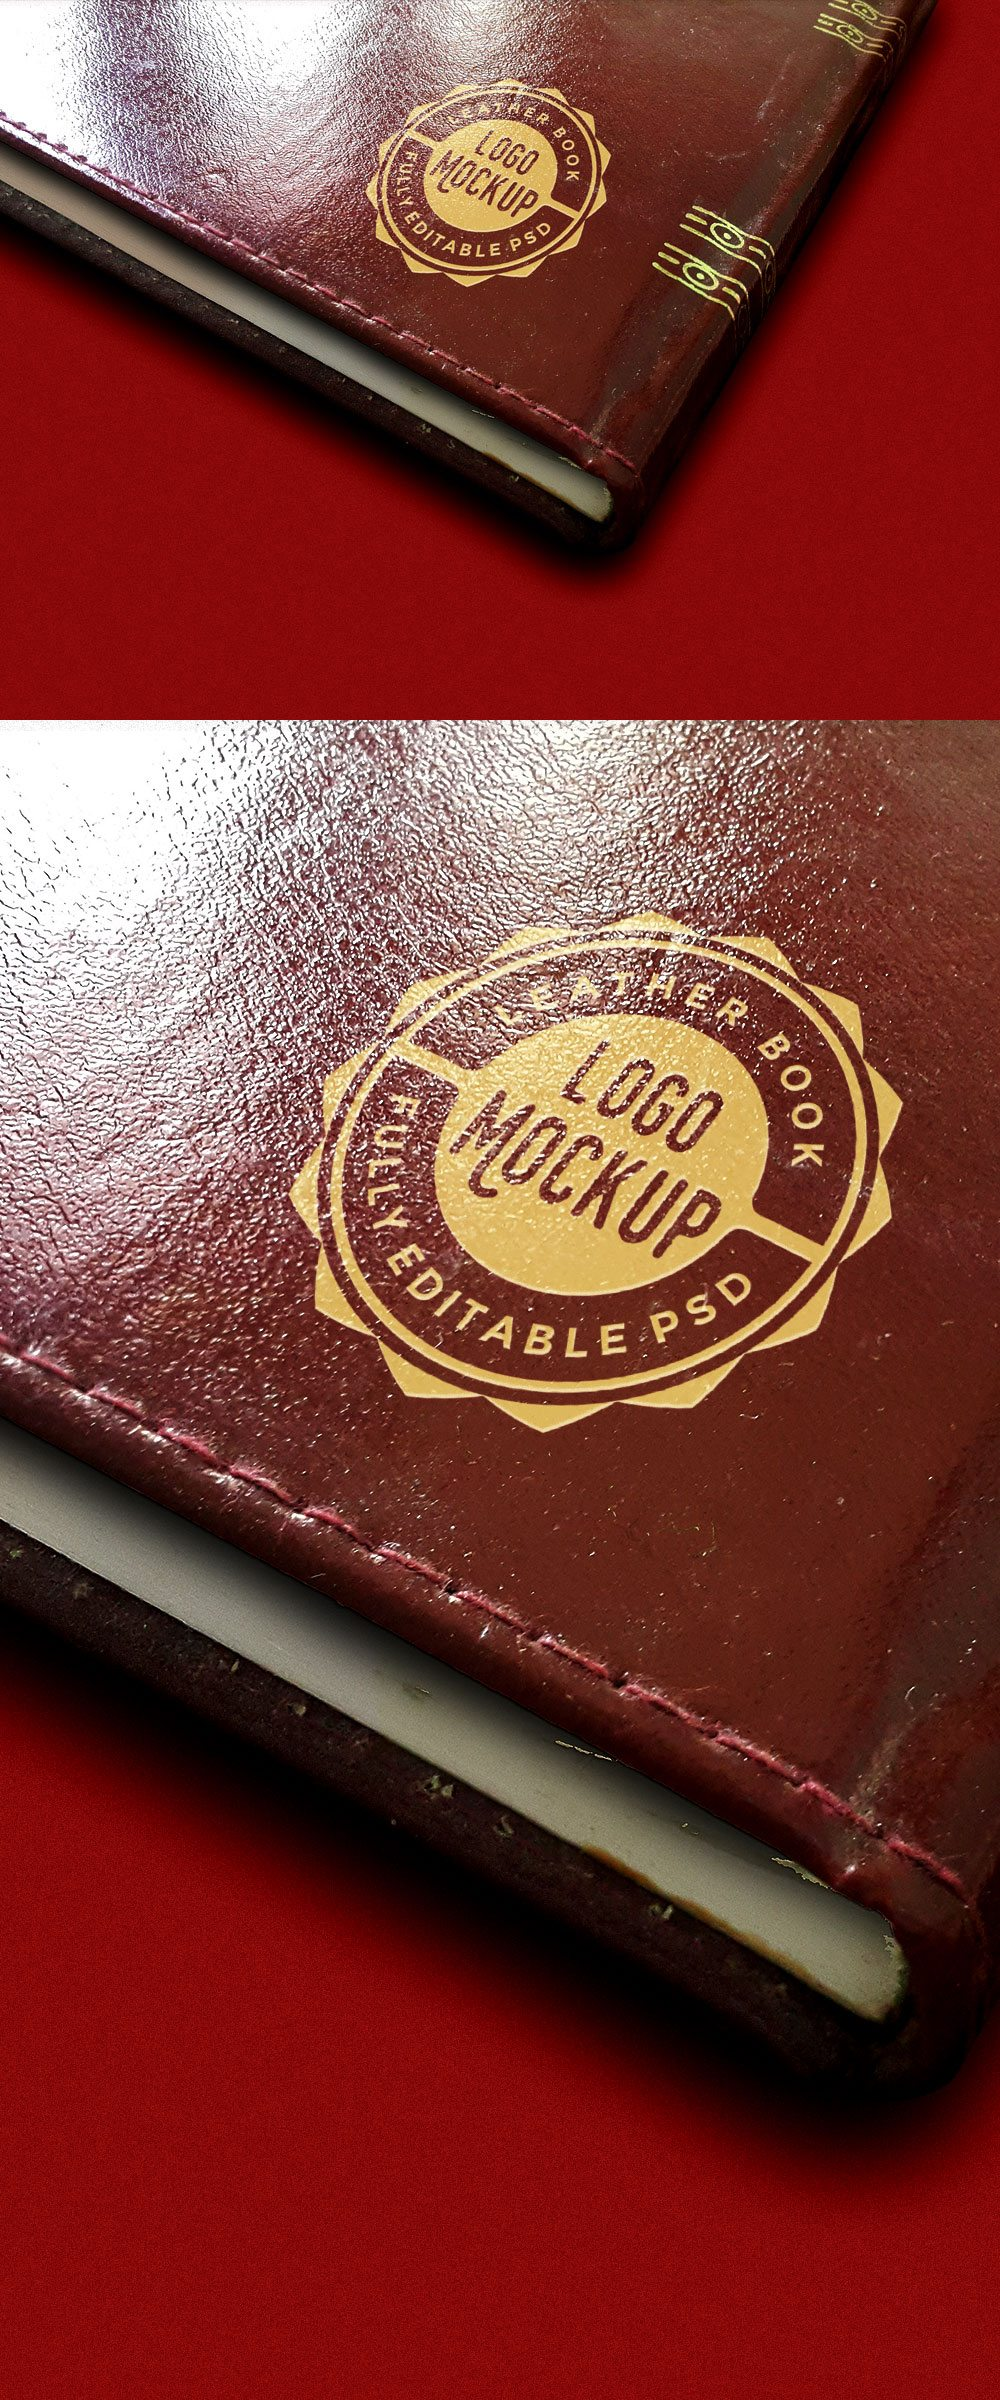 Creative Vintage Leather Book Logo Mockup